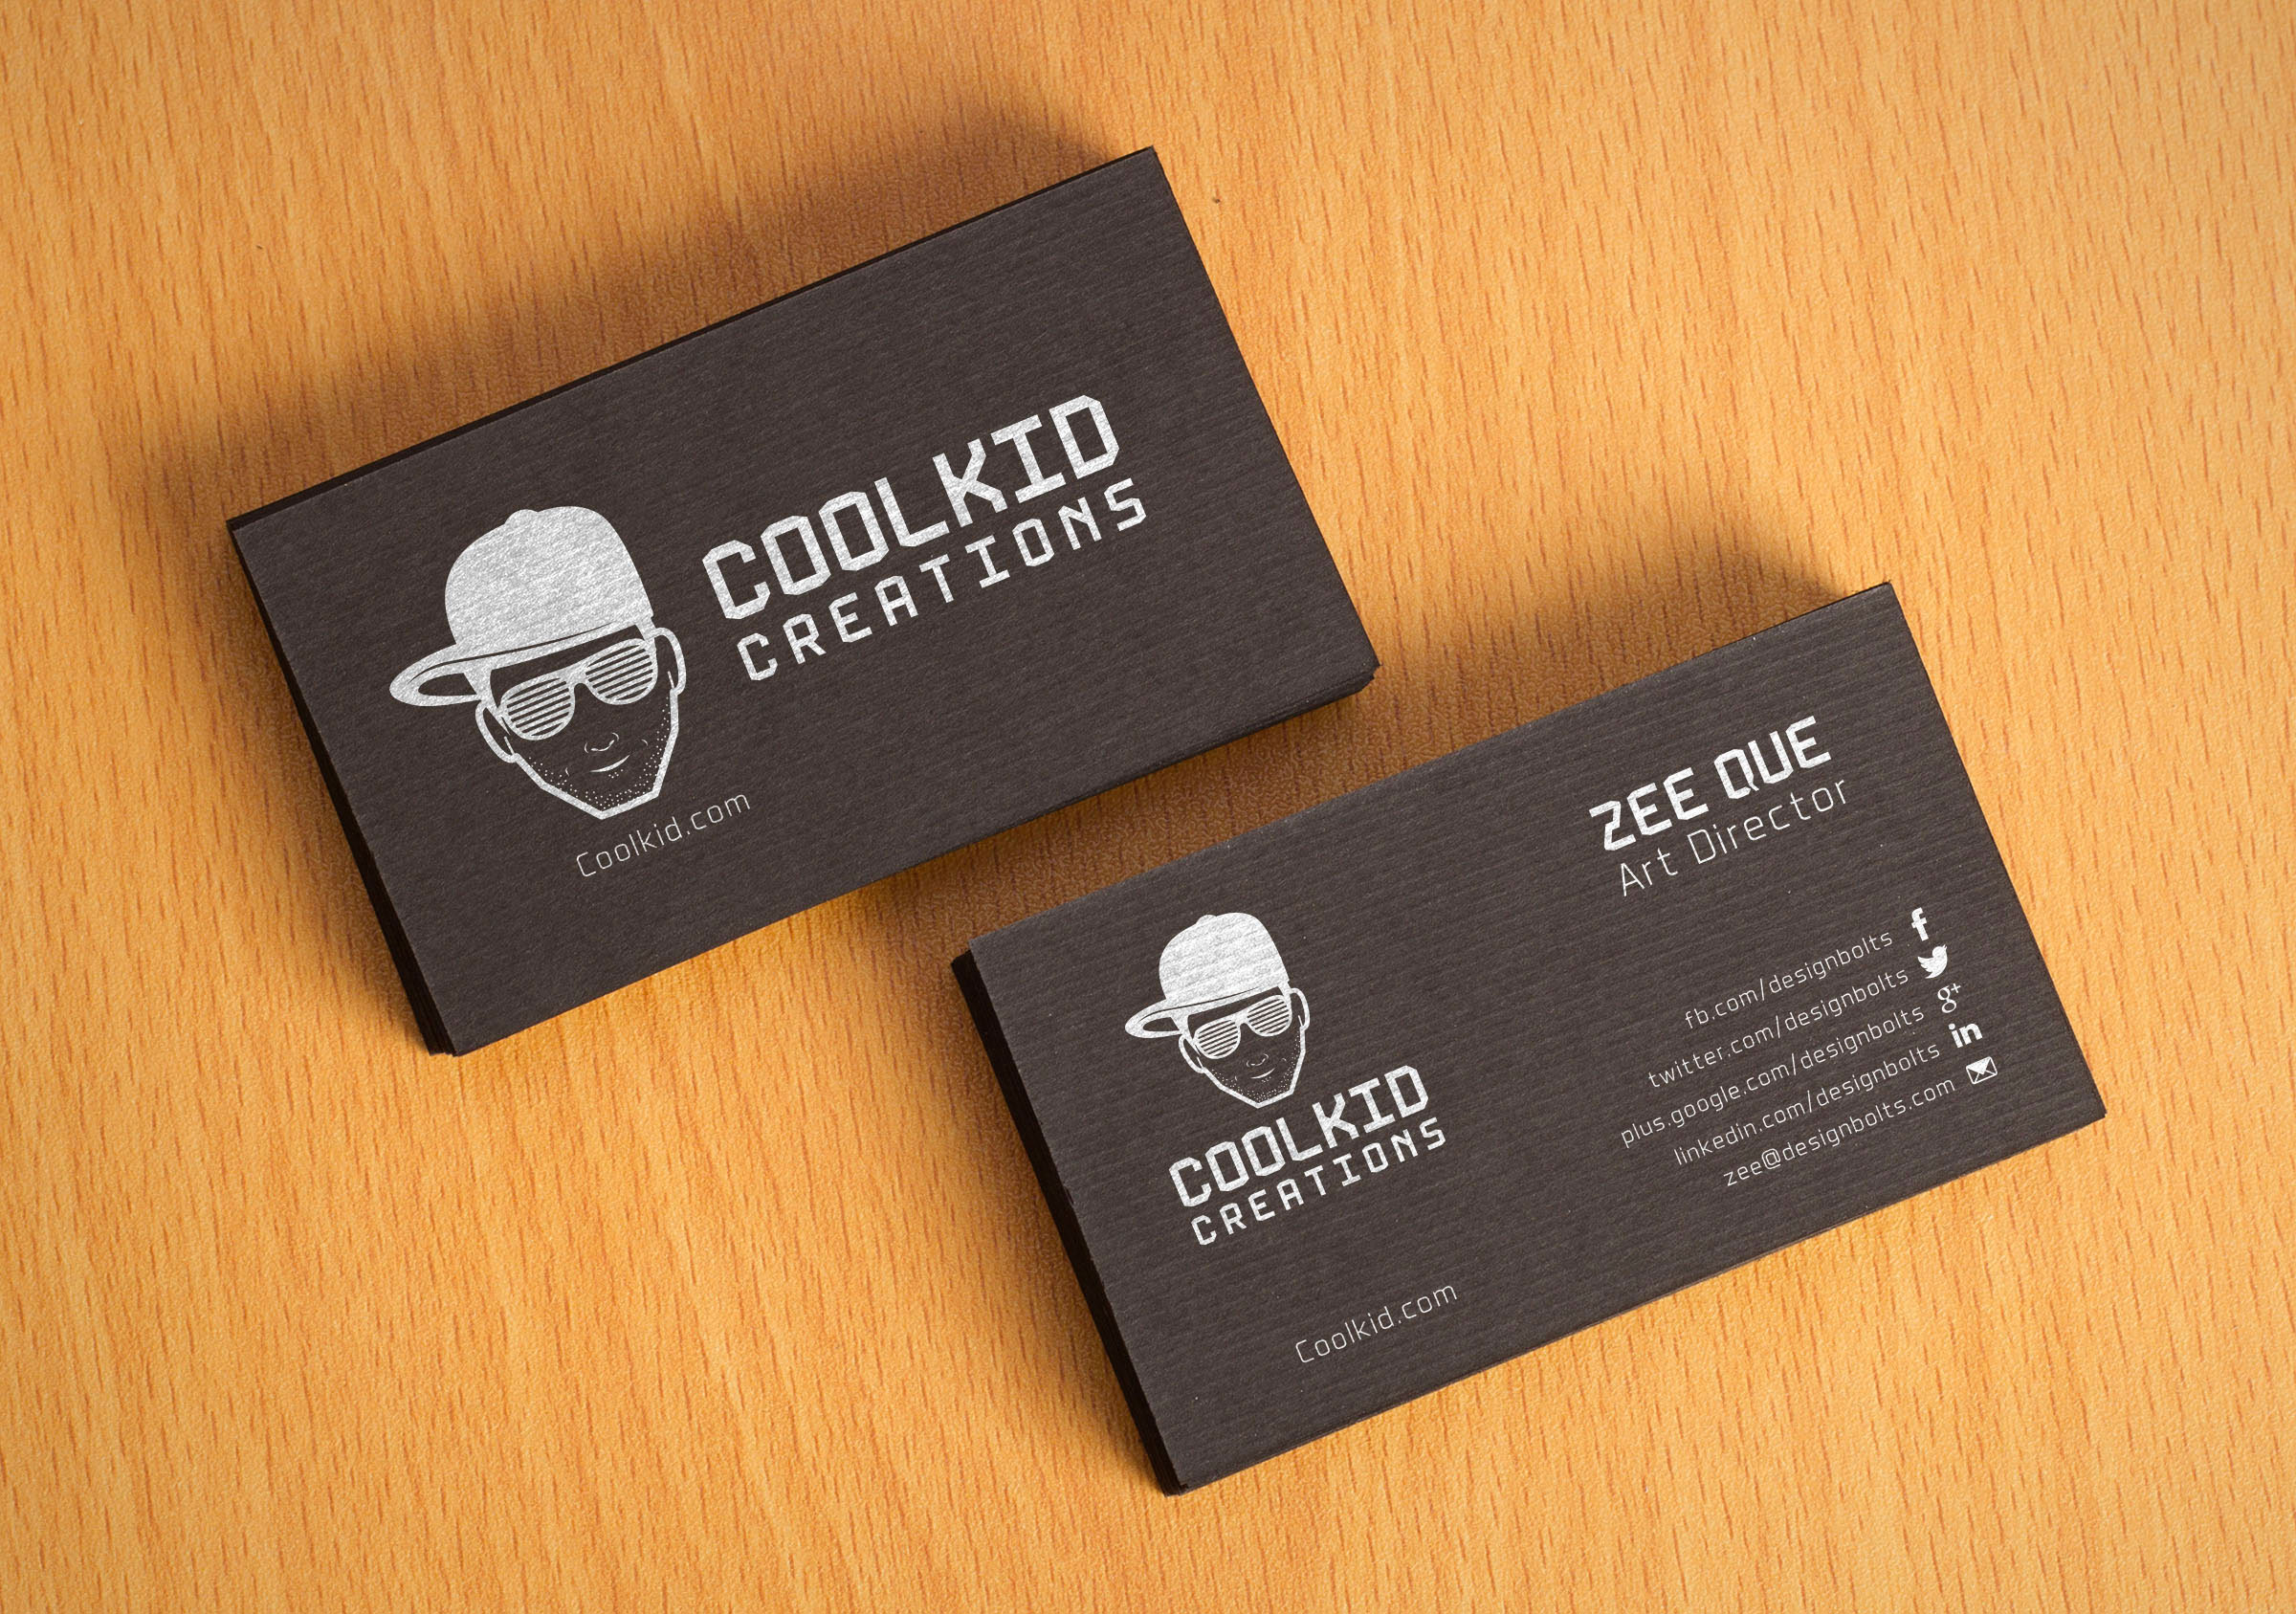 Free Black Textured Business Card Design Template Mockup PSD - Free business card design templates